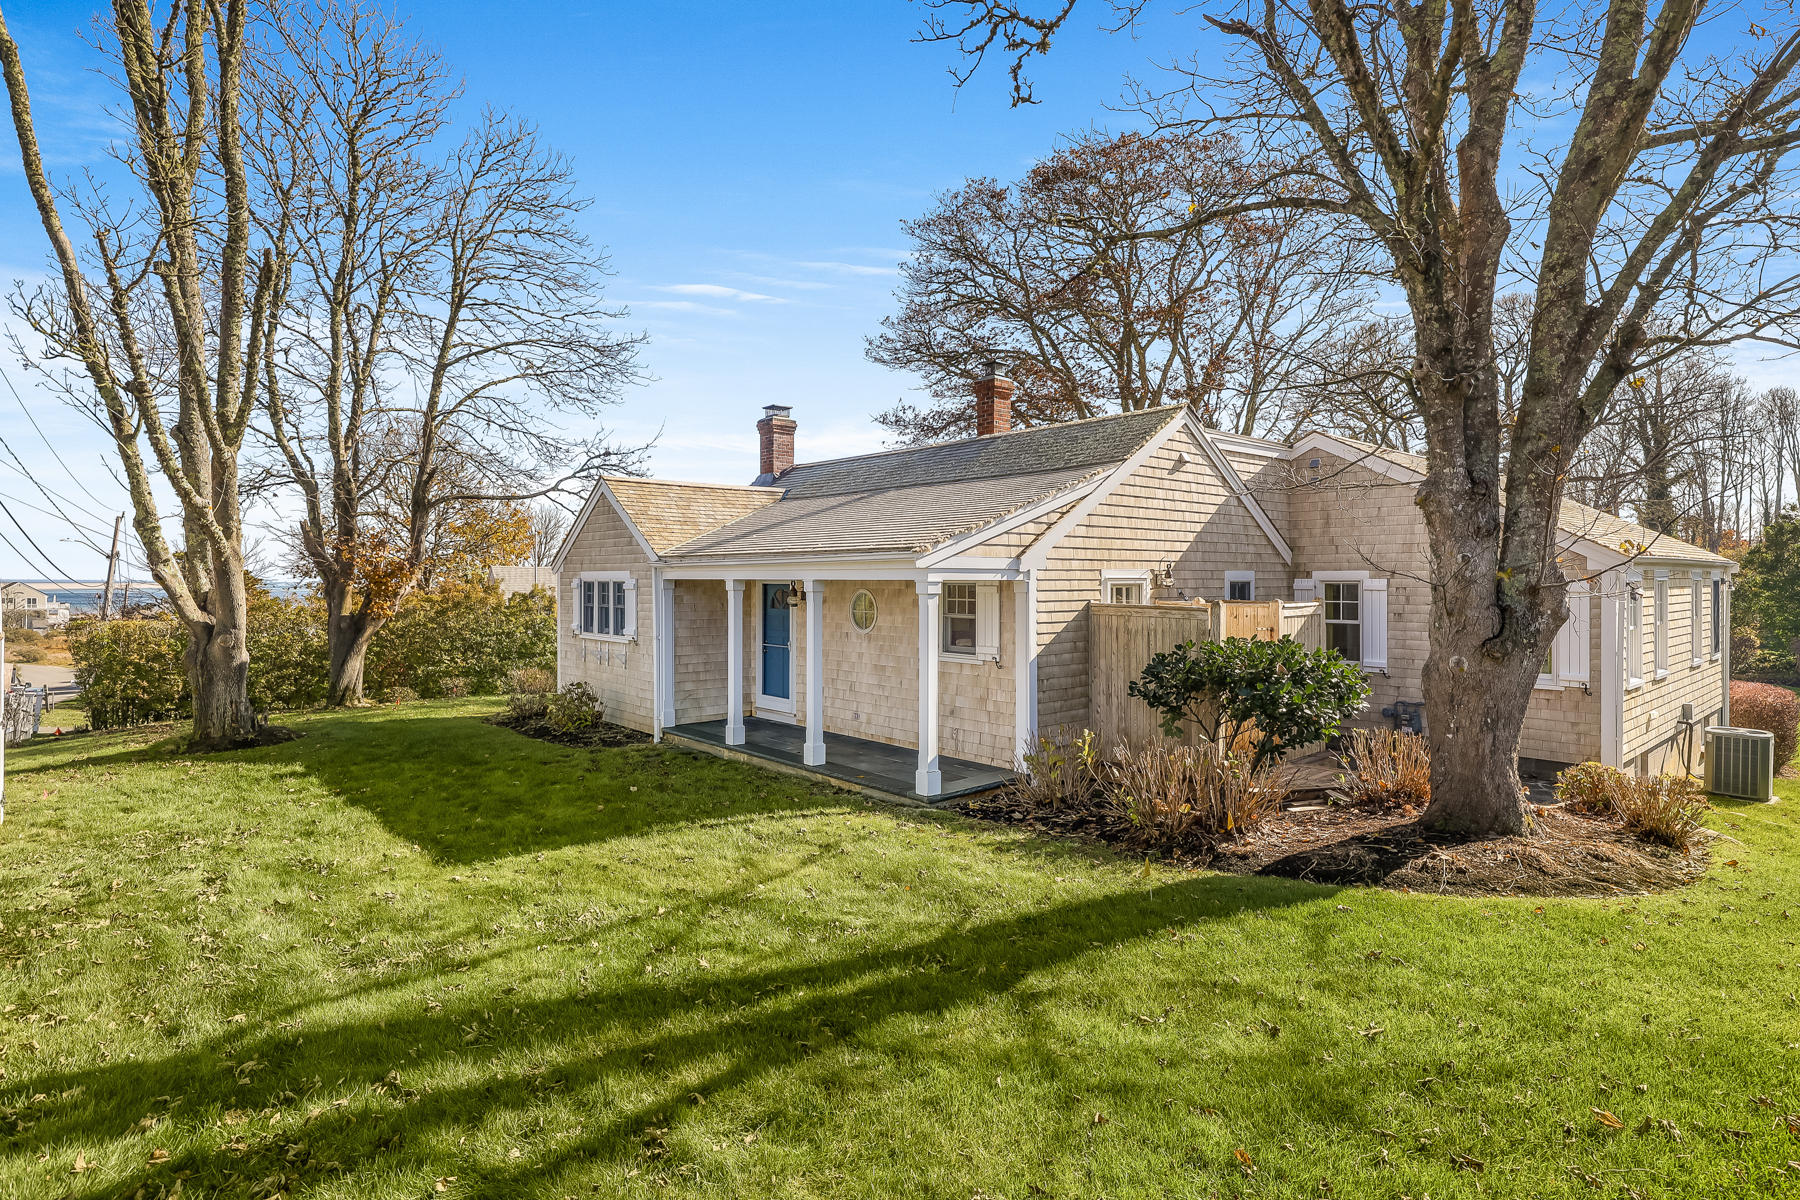 18 Old Wharf Road, North Chatham MA, 02650 sales details